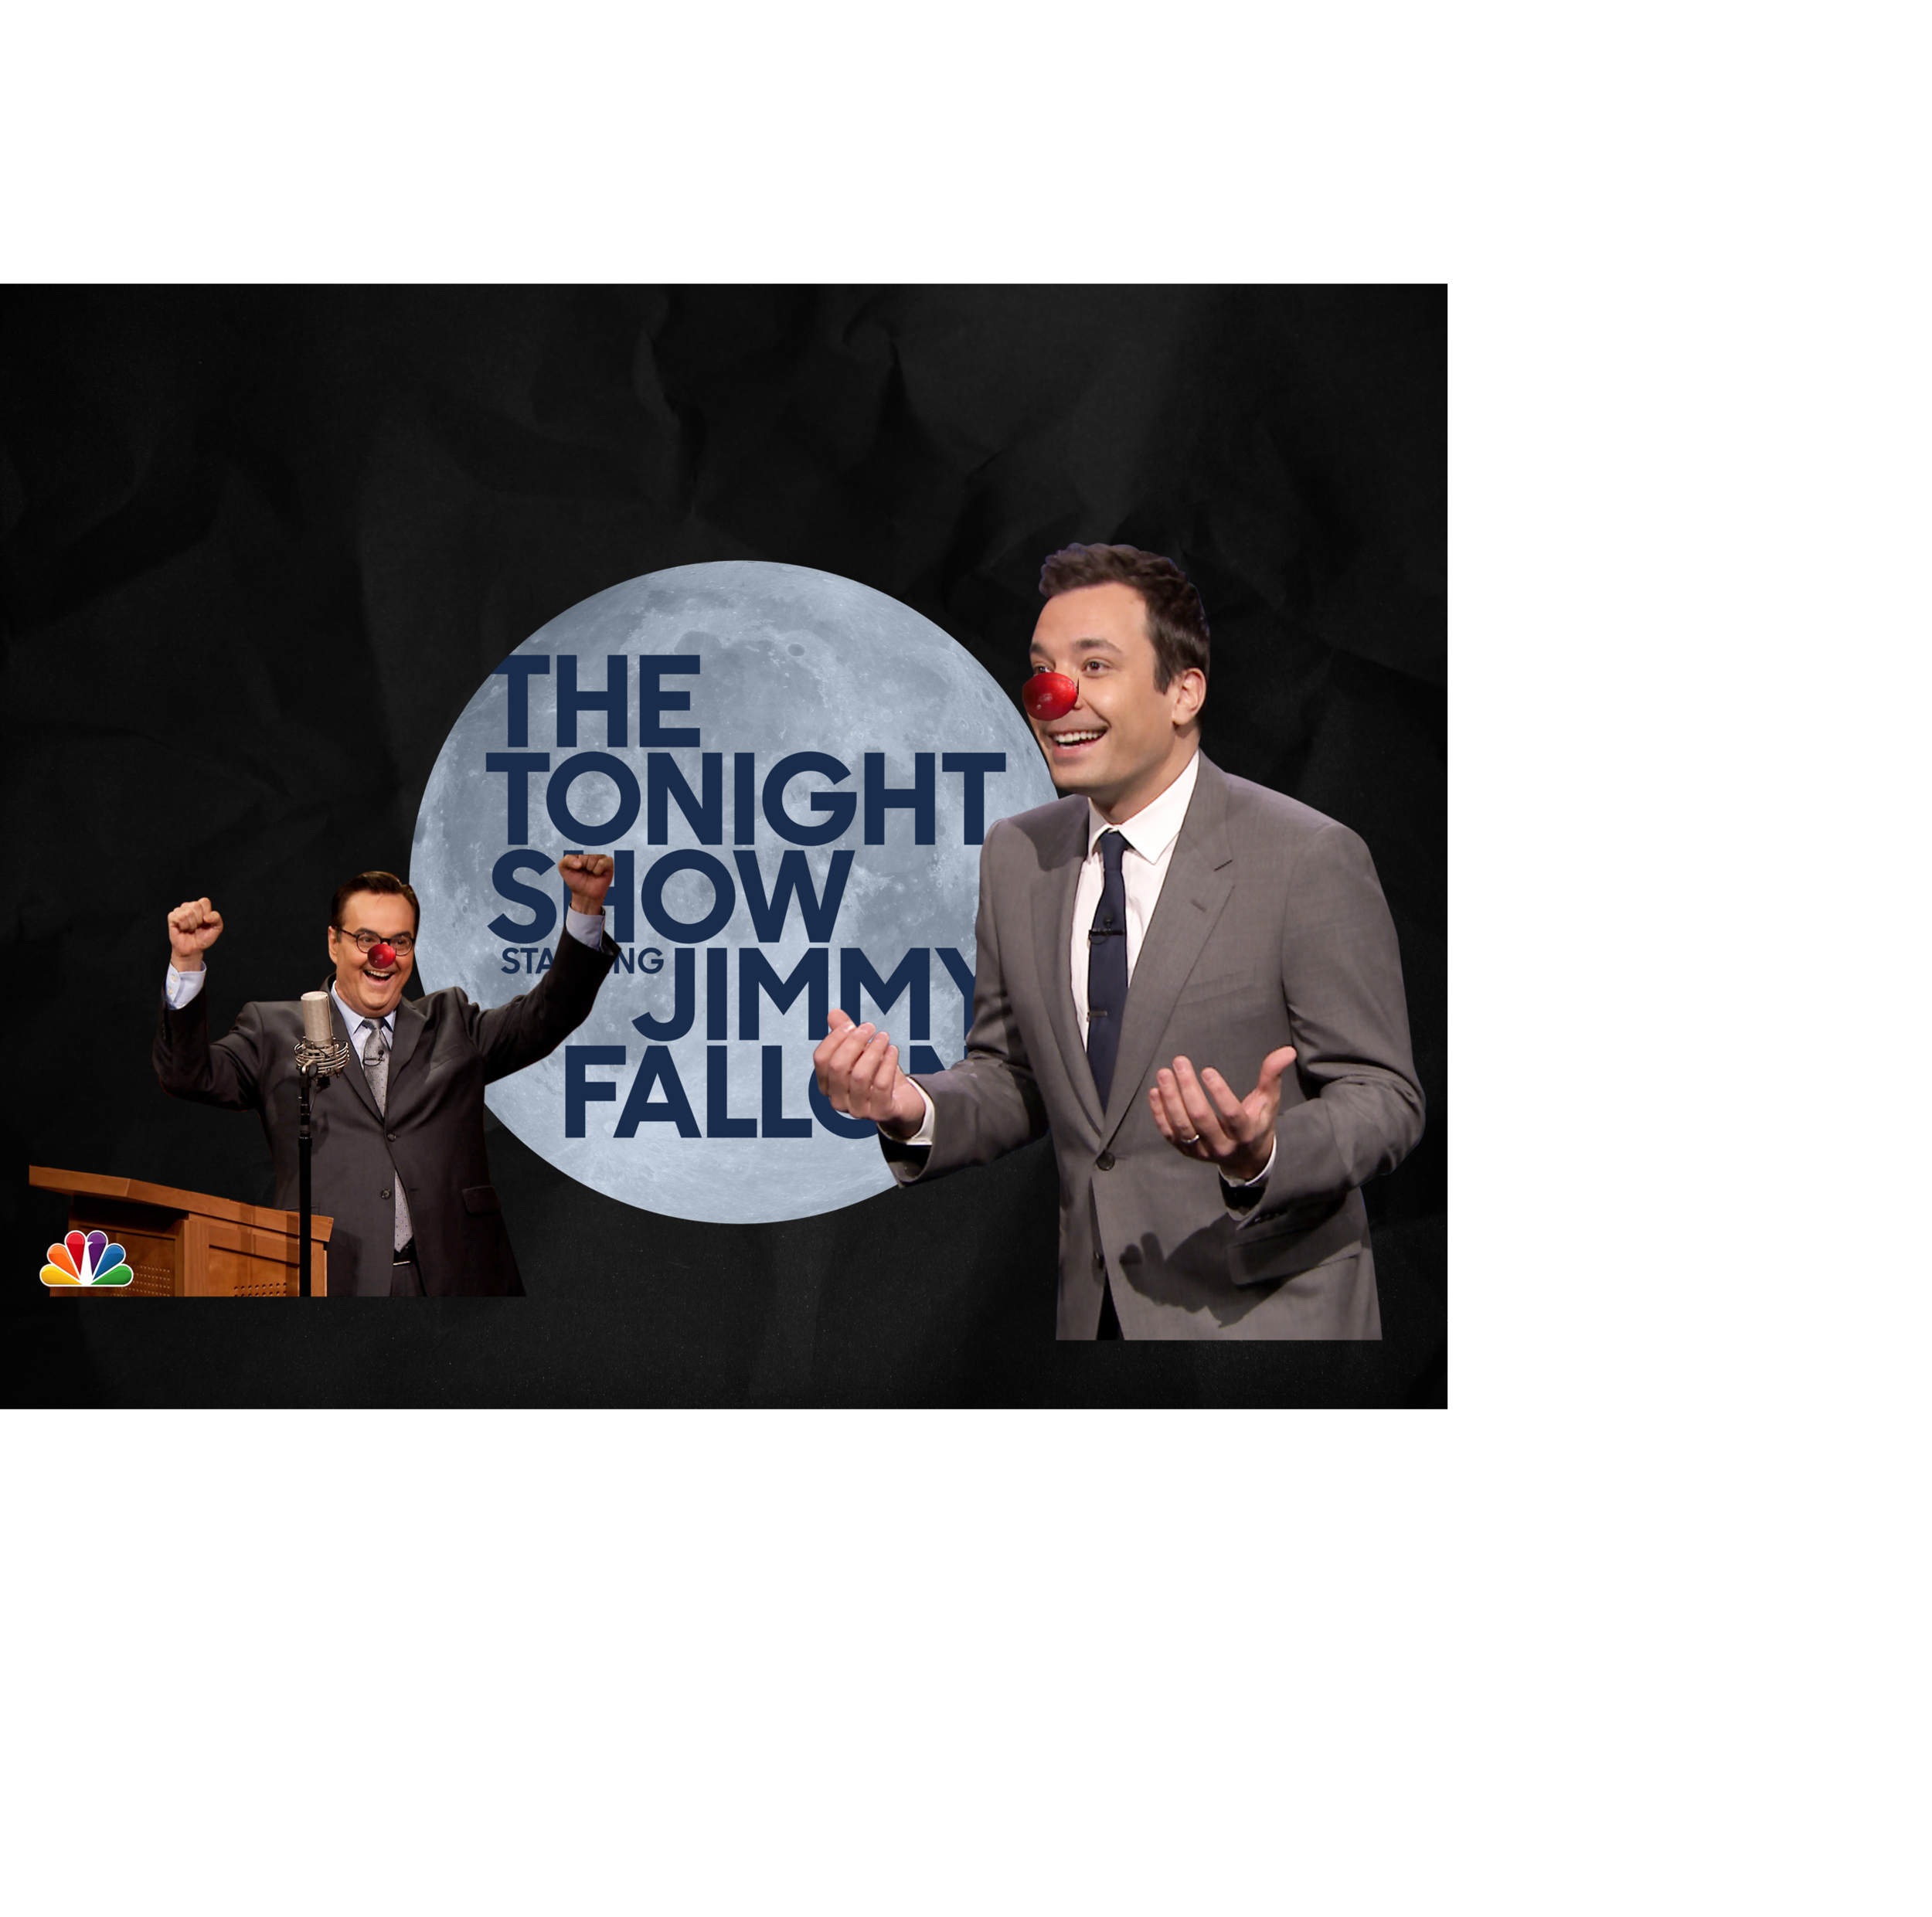 Jimmy Fallon , a millennial social media favorite and NBC star, supports  Red Nose Day , raising funds for  Comic Relief and childhood poverty. Ocean Spray brings Fallon to a bog with a farmer-grower and provides  cranberry red noses. A great tie-in as 70% of millennials spends more on cause-supporting brands.